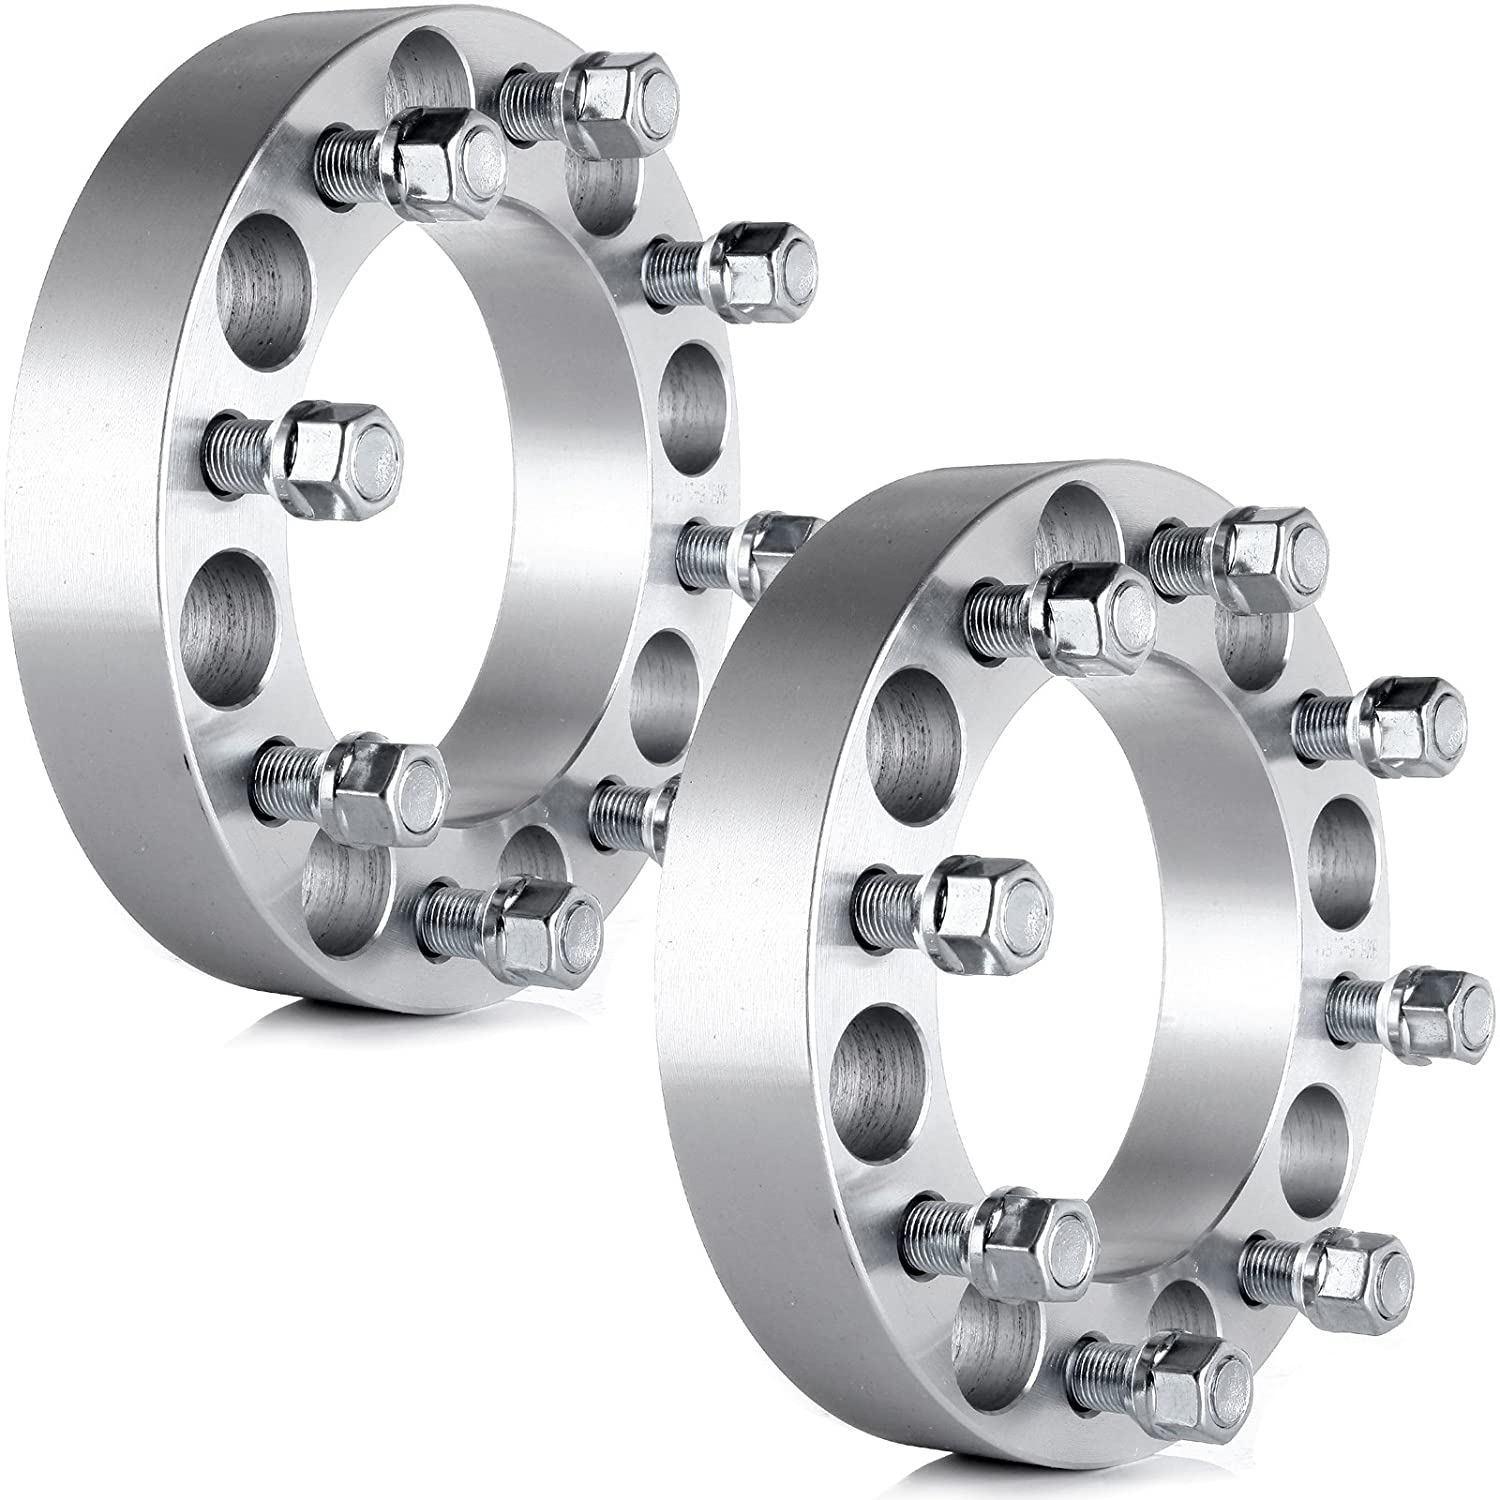 2pc 1.5 Thick 8x6.5 to 8x6.5 Wheel Spacers with 9//16 Studs for Ford Dodge Chevy Jeep GDSMOTU